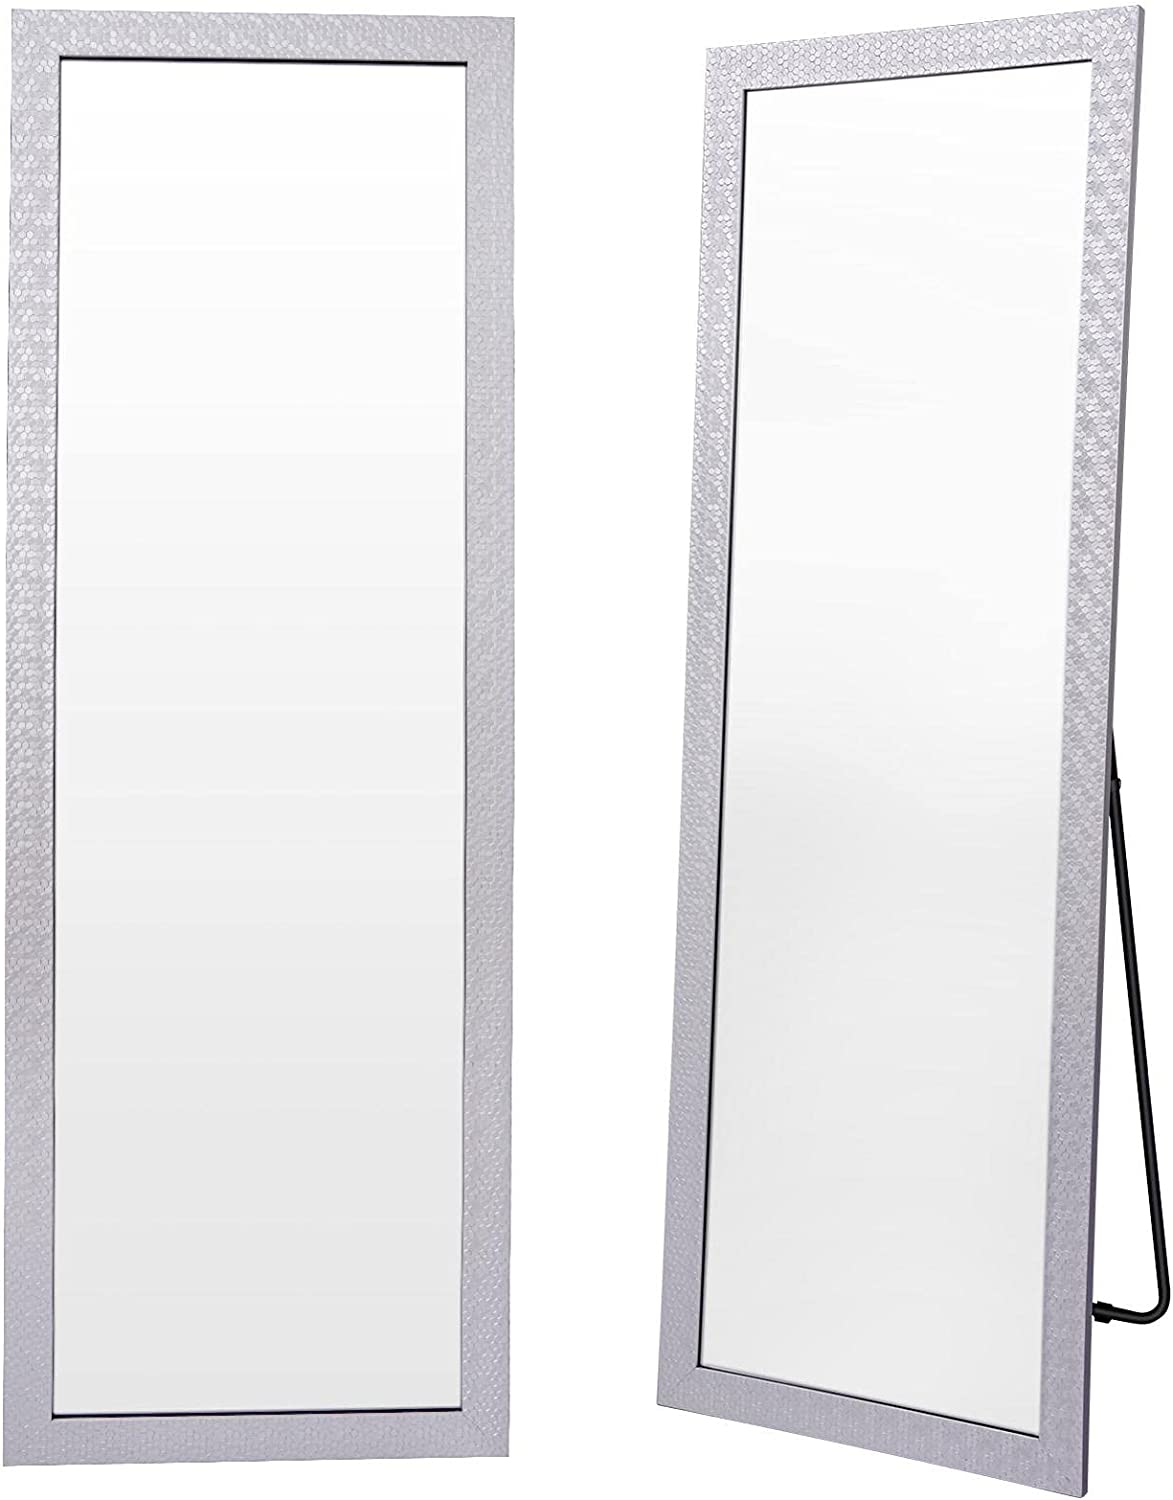 Max 73% OFF Full Length 70% OFF Outlet Mirror 65x22inch wi Long Floor Modern